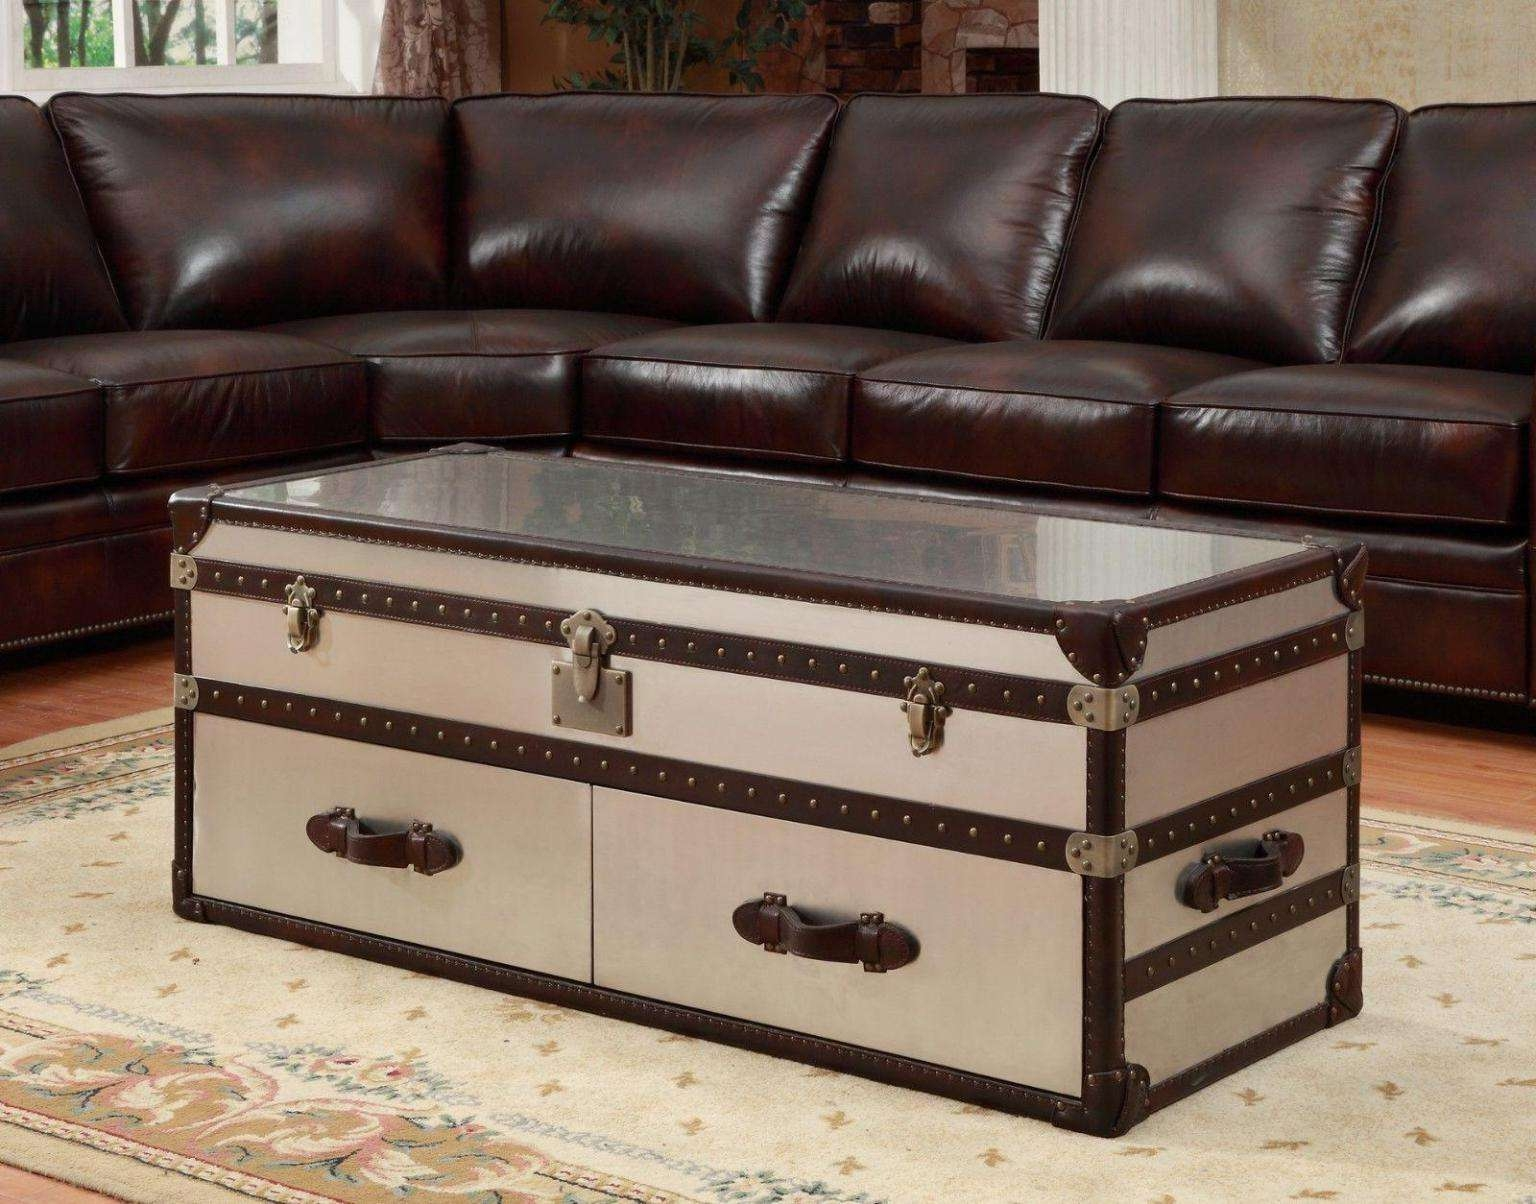 Coffee Tables : Antique Trunks For Sale Buy Trunk Coffee Table Within Favorite Trunks Coffee Tables (View 2 of 20)